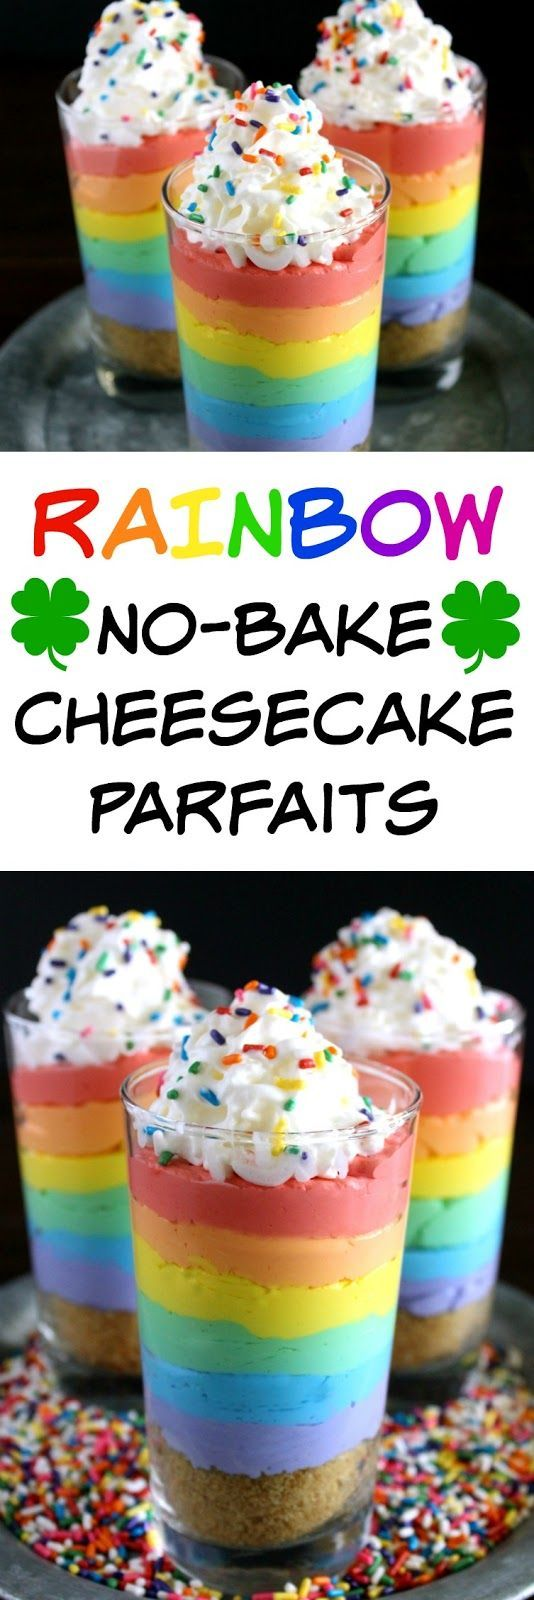 Rainbow No-Bake Cheesecake Parfaits from http://LoveandConfections.com